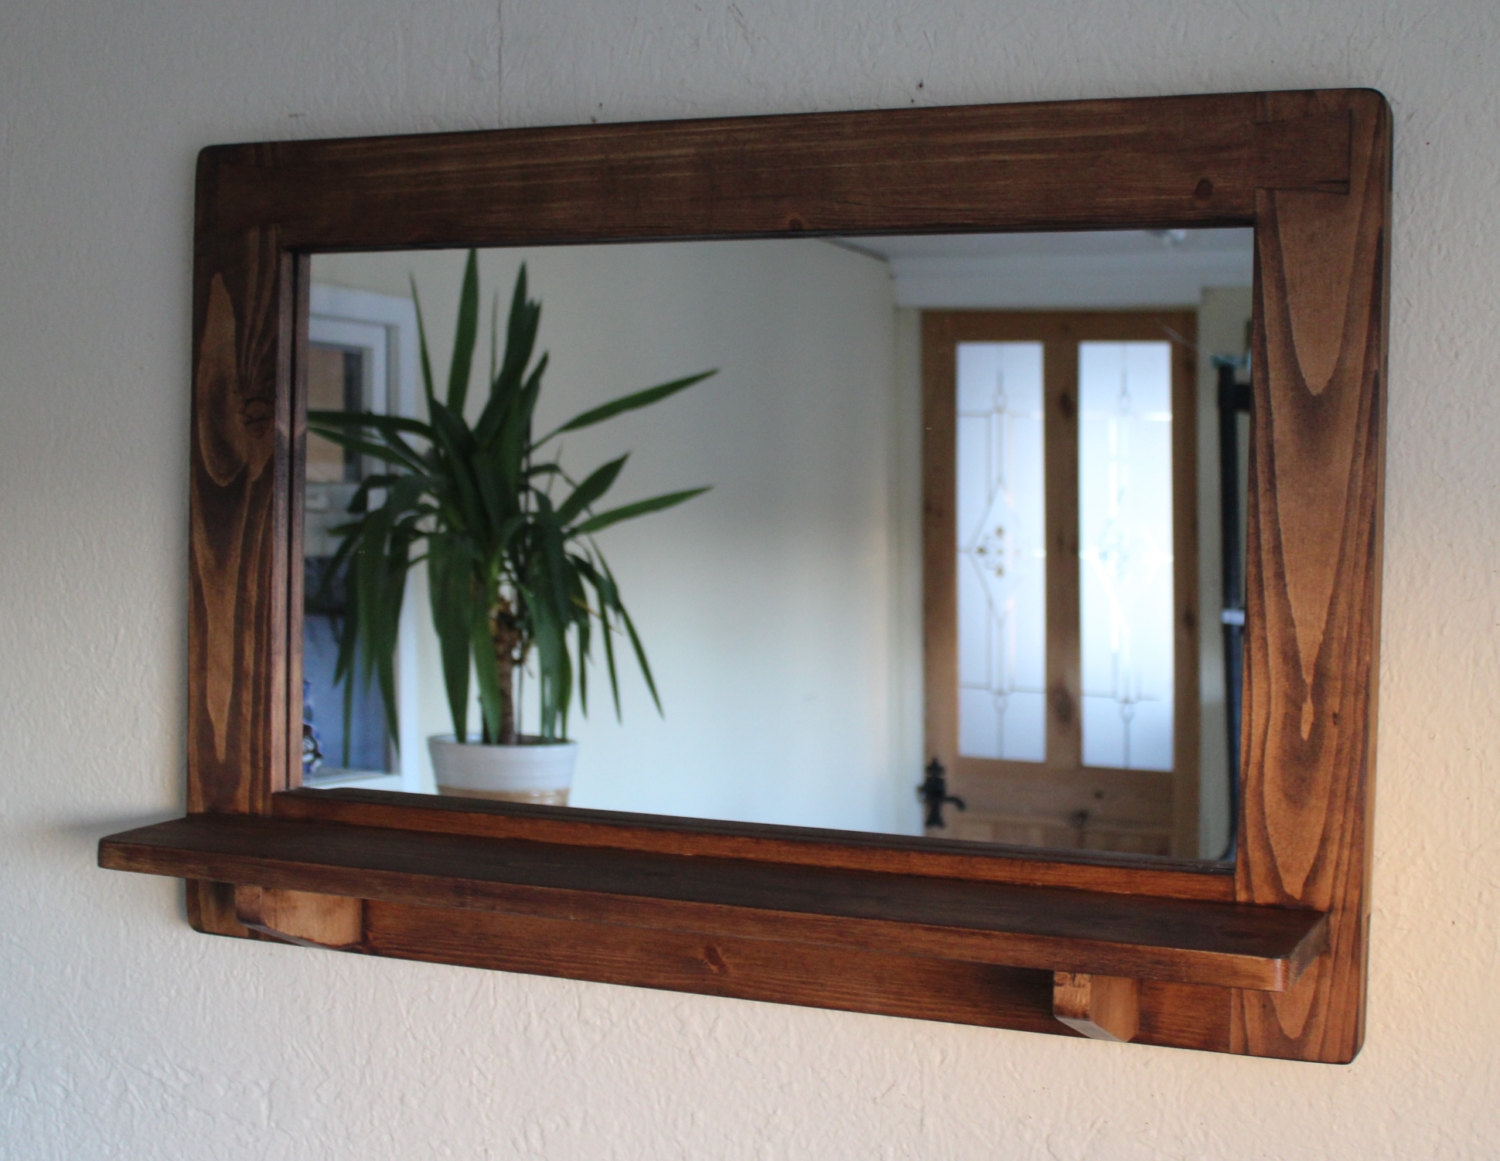 Wood Framed Bathroom Vanity Mirrors 15 Collection Of Rustic Oak Framed Mirrors Mirror Ideas